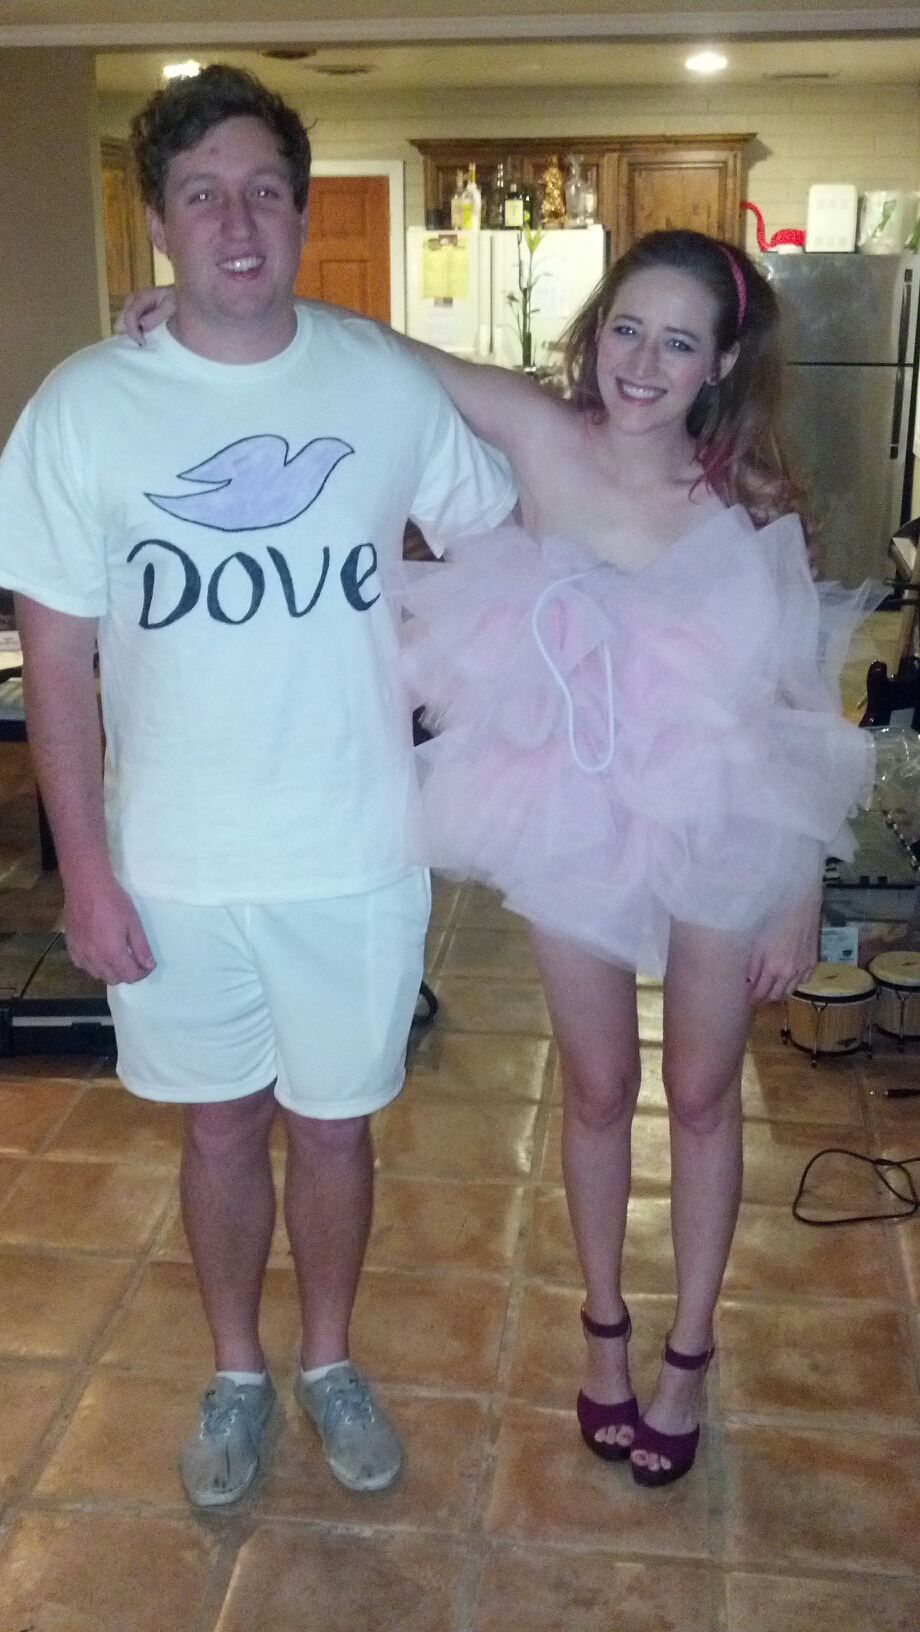 Soap loofah halloween costume diy diy i must try pinterest soap loofah halloween costume diy solutioingenieria Image collections